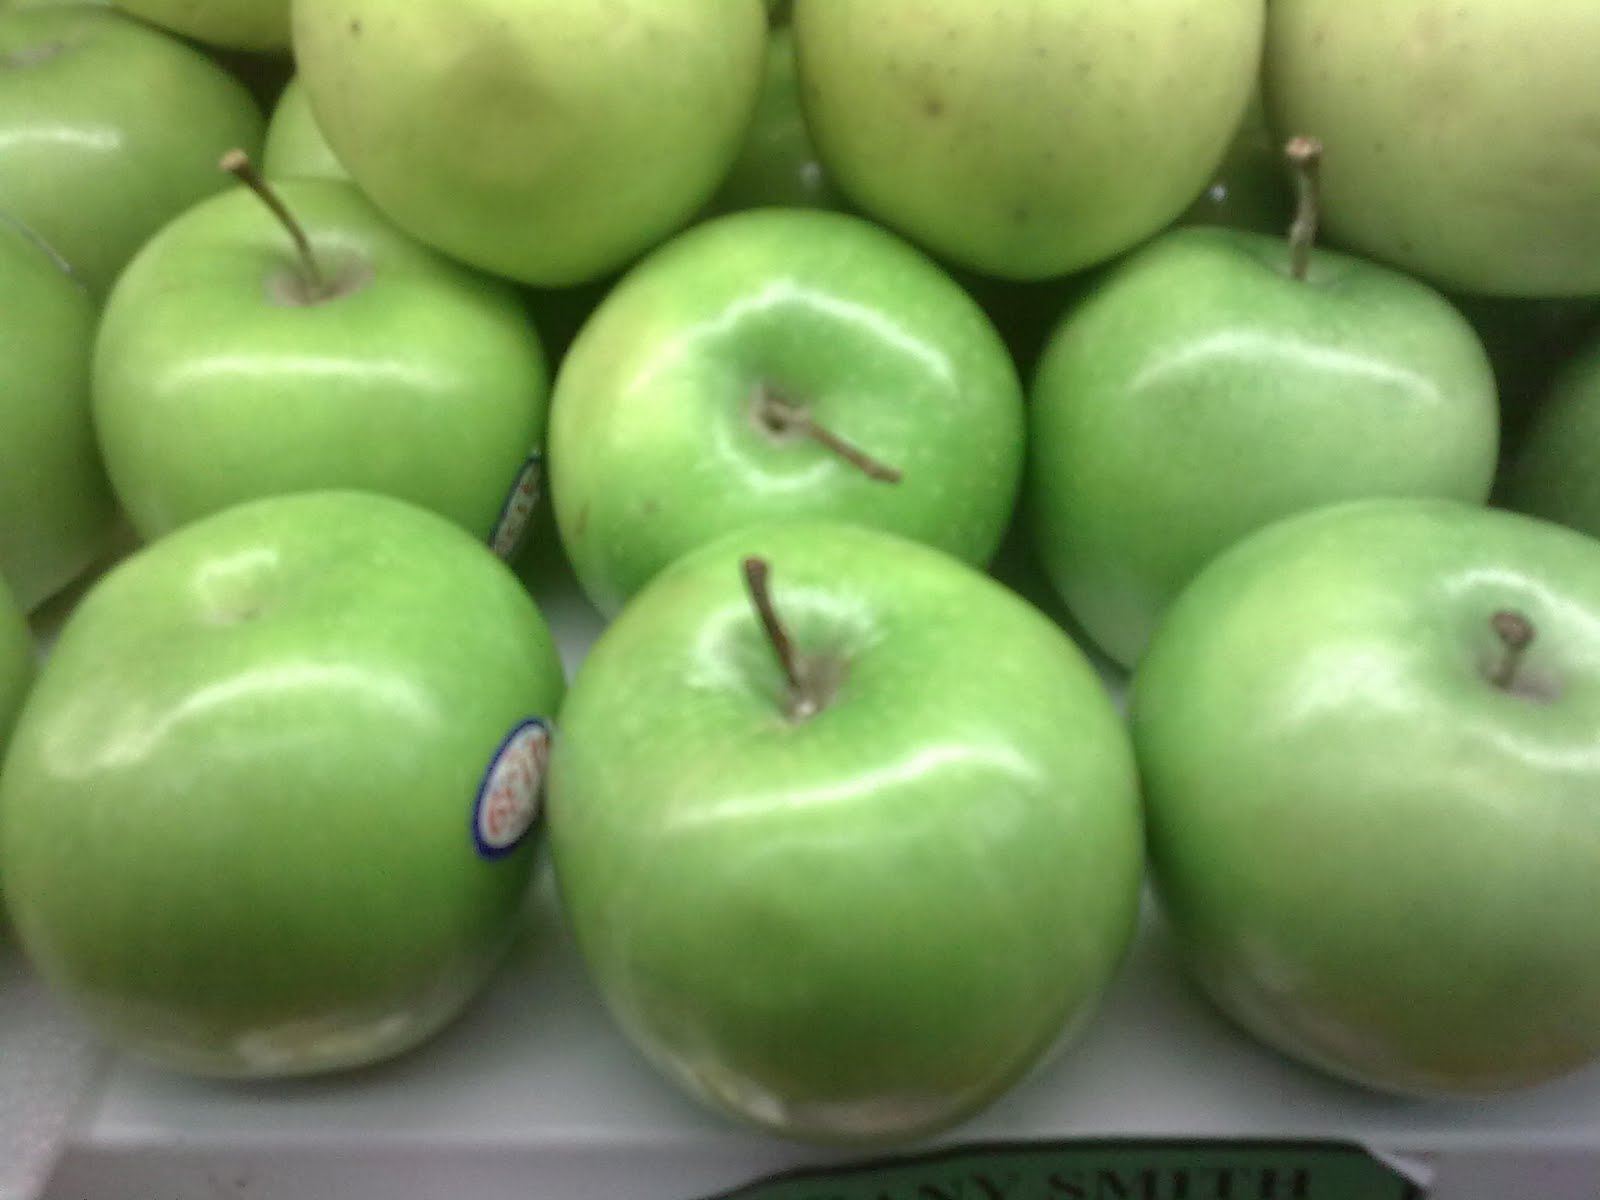 Types of Green Apple's http://vclement.blogspot.com/2011_03_01_archive.html